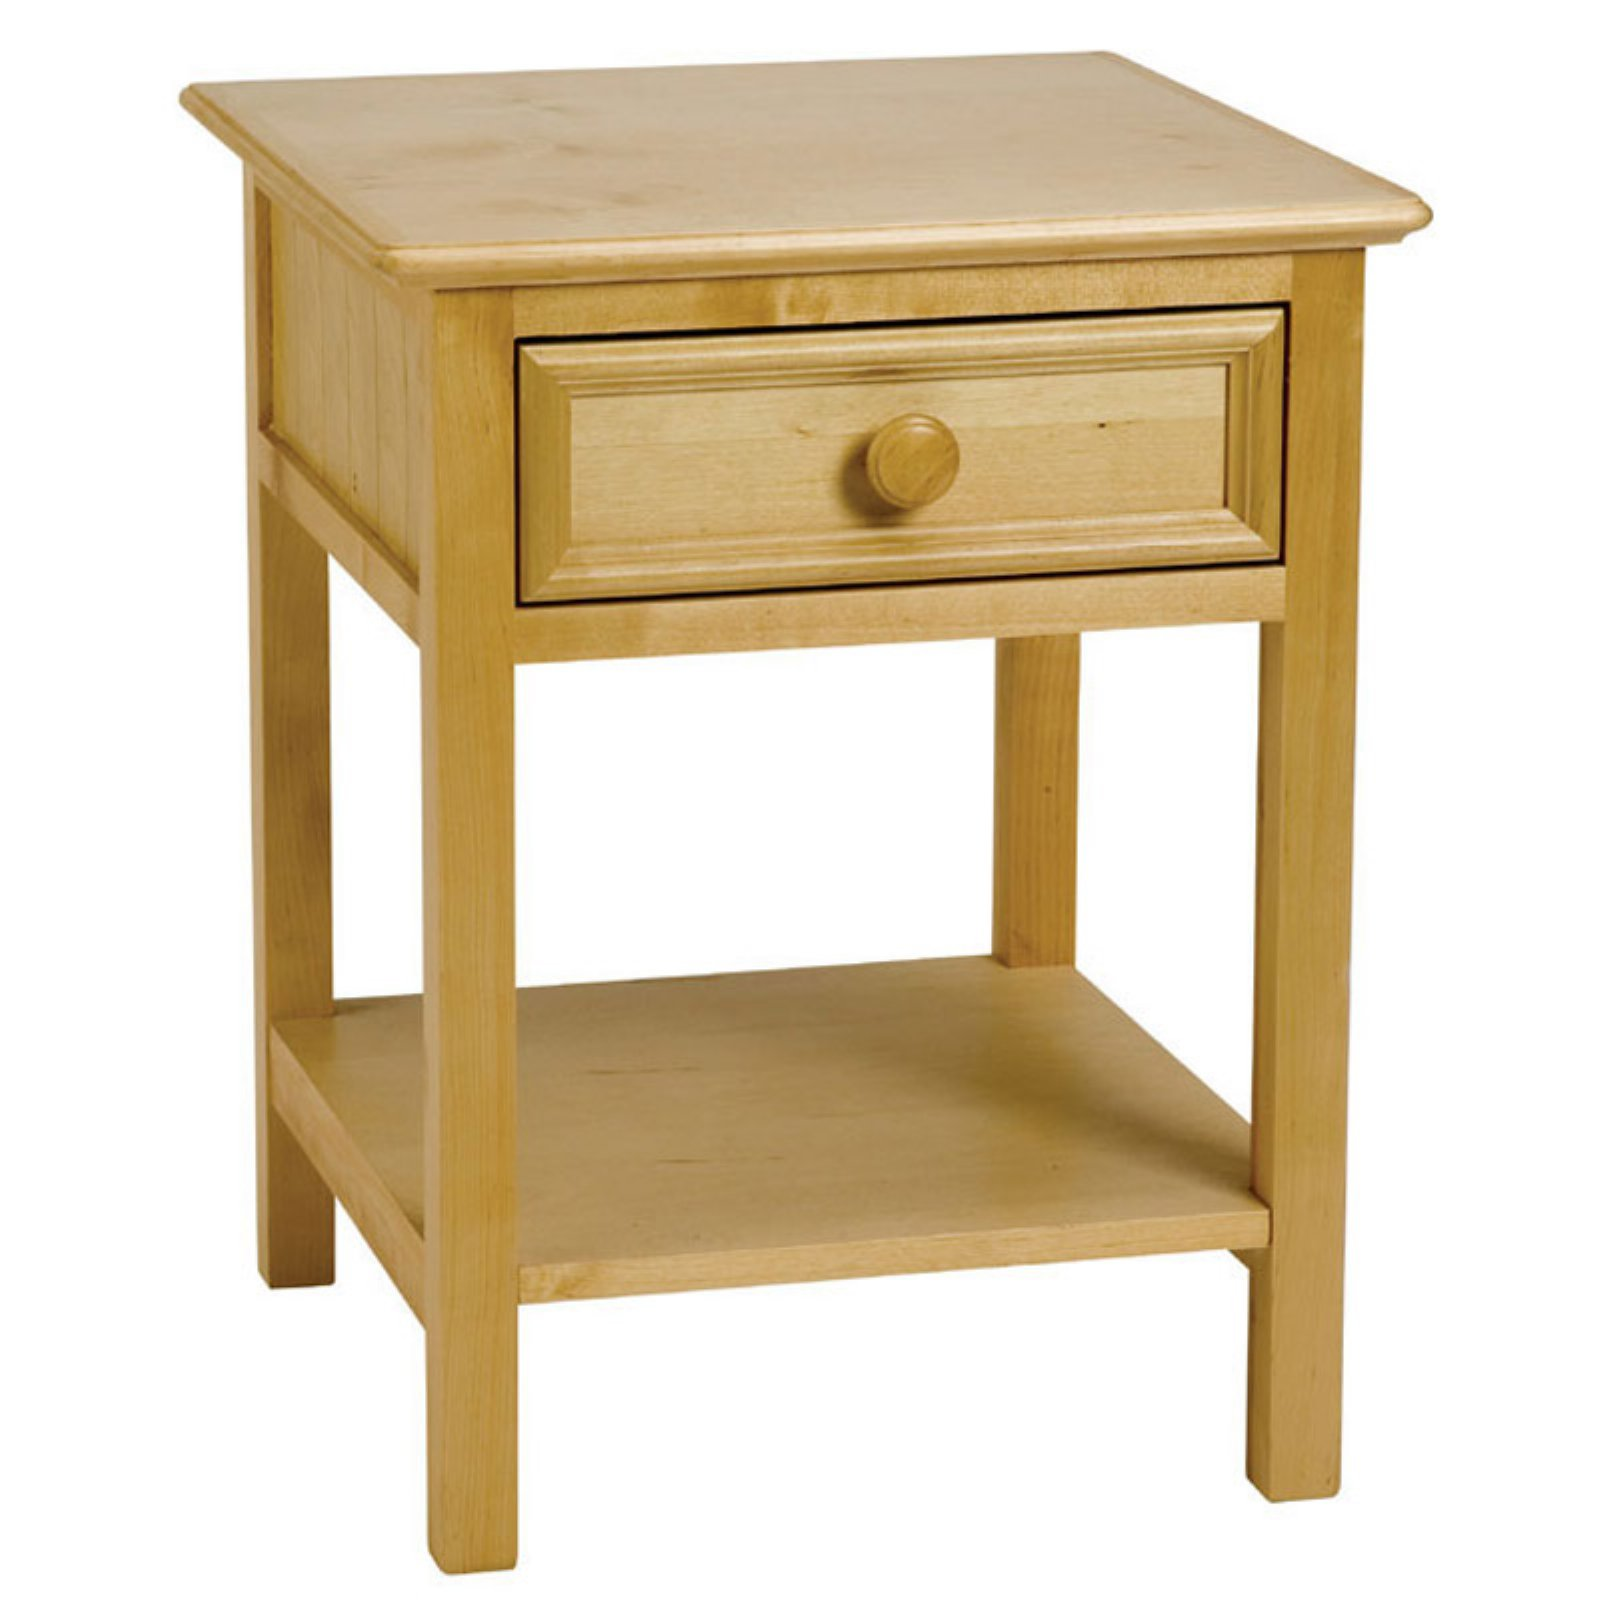 Bolton Furniture Wakefield 1-Drawer Nightstand, Multiple Colors